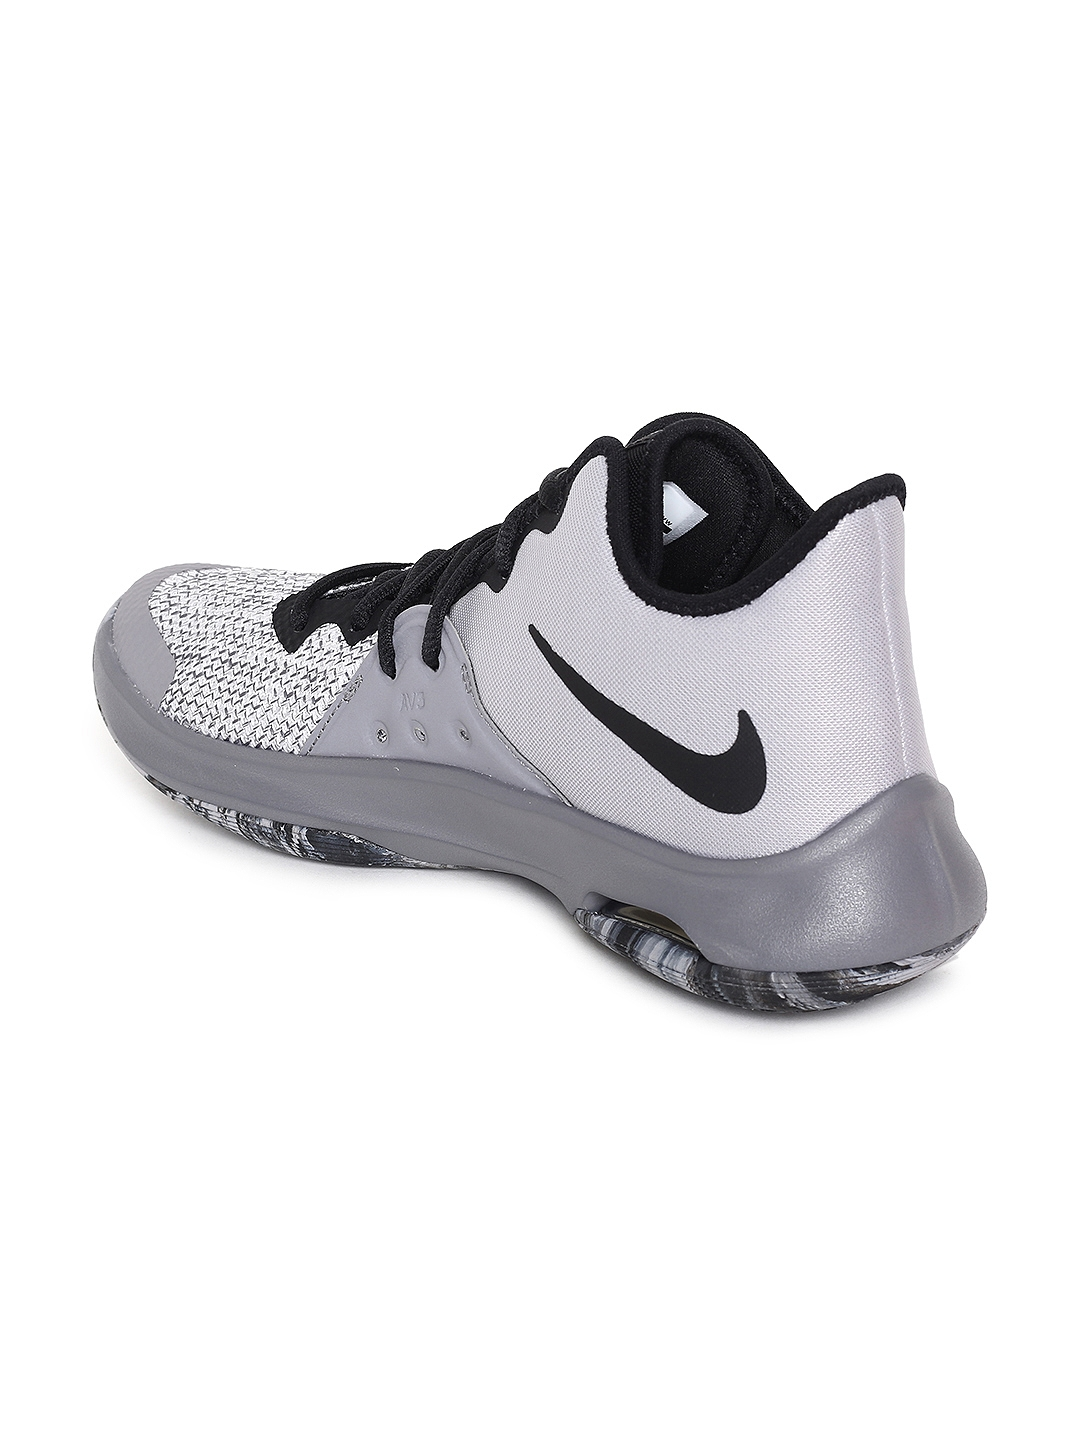 383c0e0a1cb4 Nike Unisex Grey Solid Textile AIR VERSITILE III Mid-Top Basketball Shoes